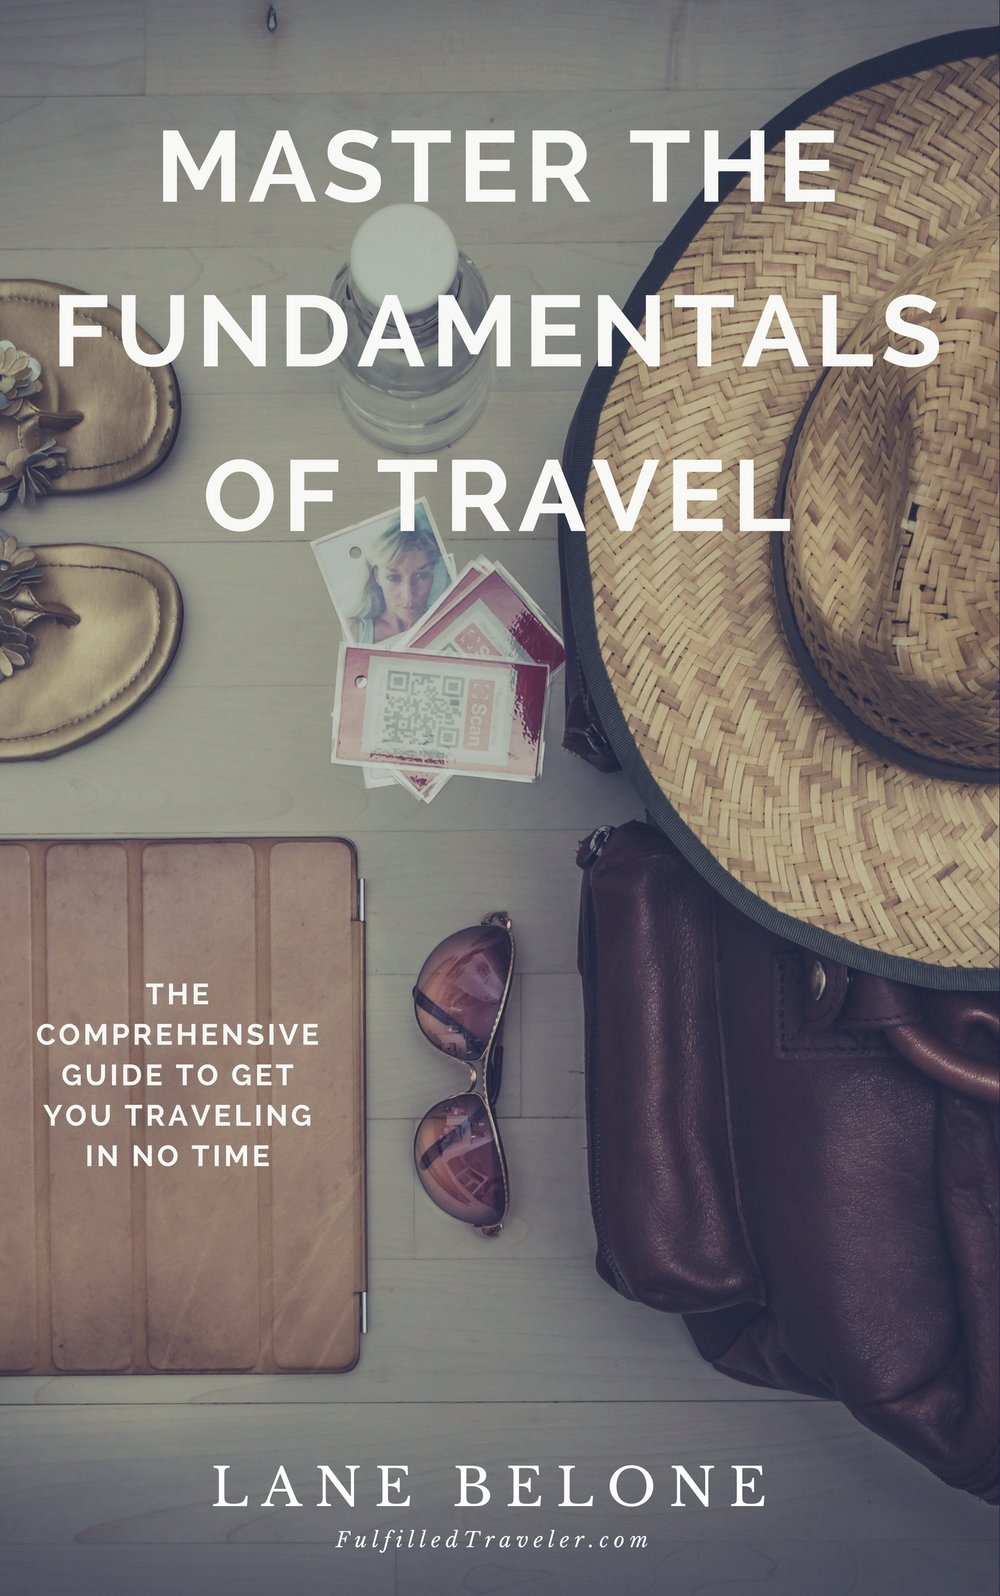 Master the Travel Fundamentals Book Cover (JPEG).jpg